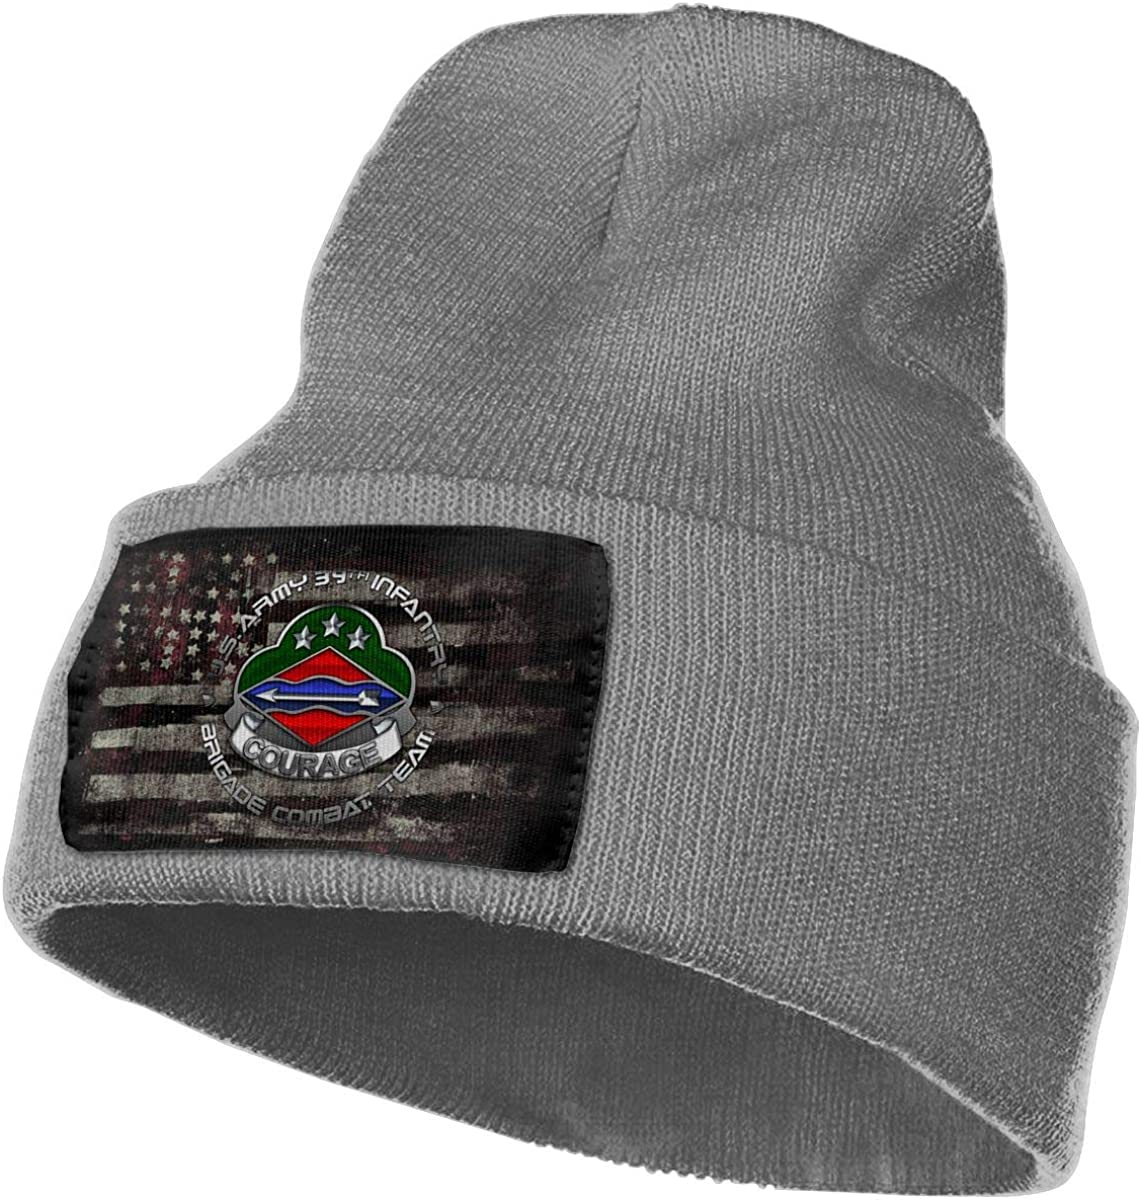 39th Infantry Brigade DUI Mens Beanie Cap Skull Cap Winter Warm Knitting Hats.